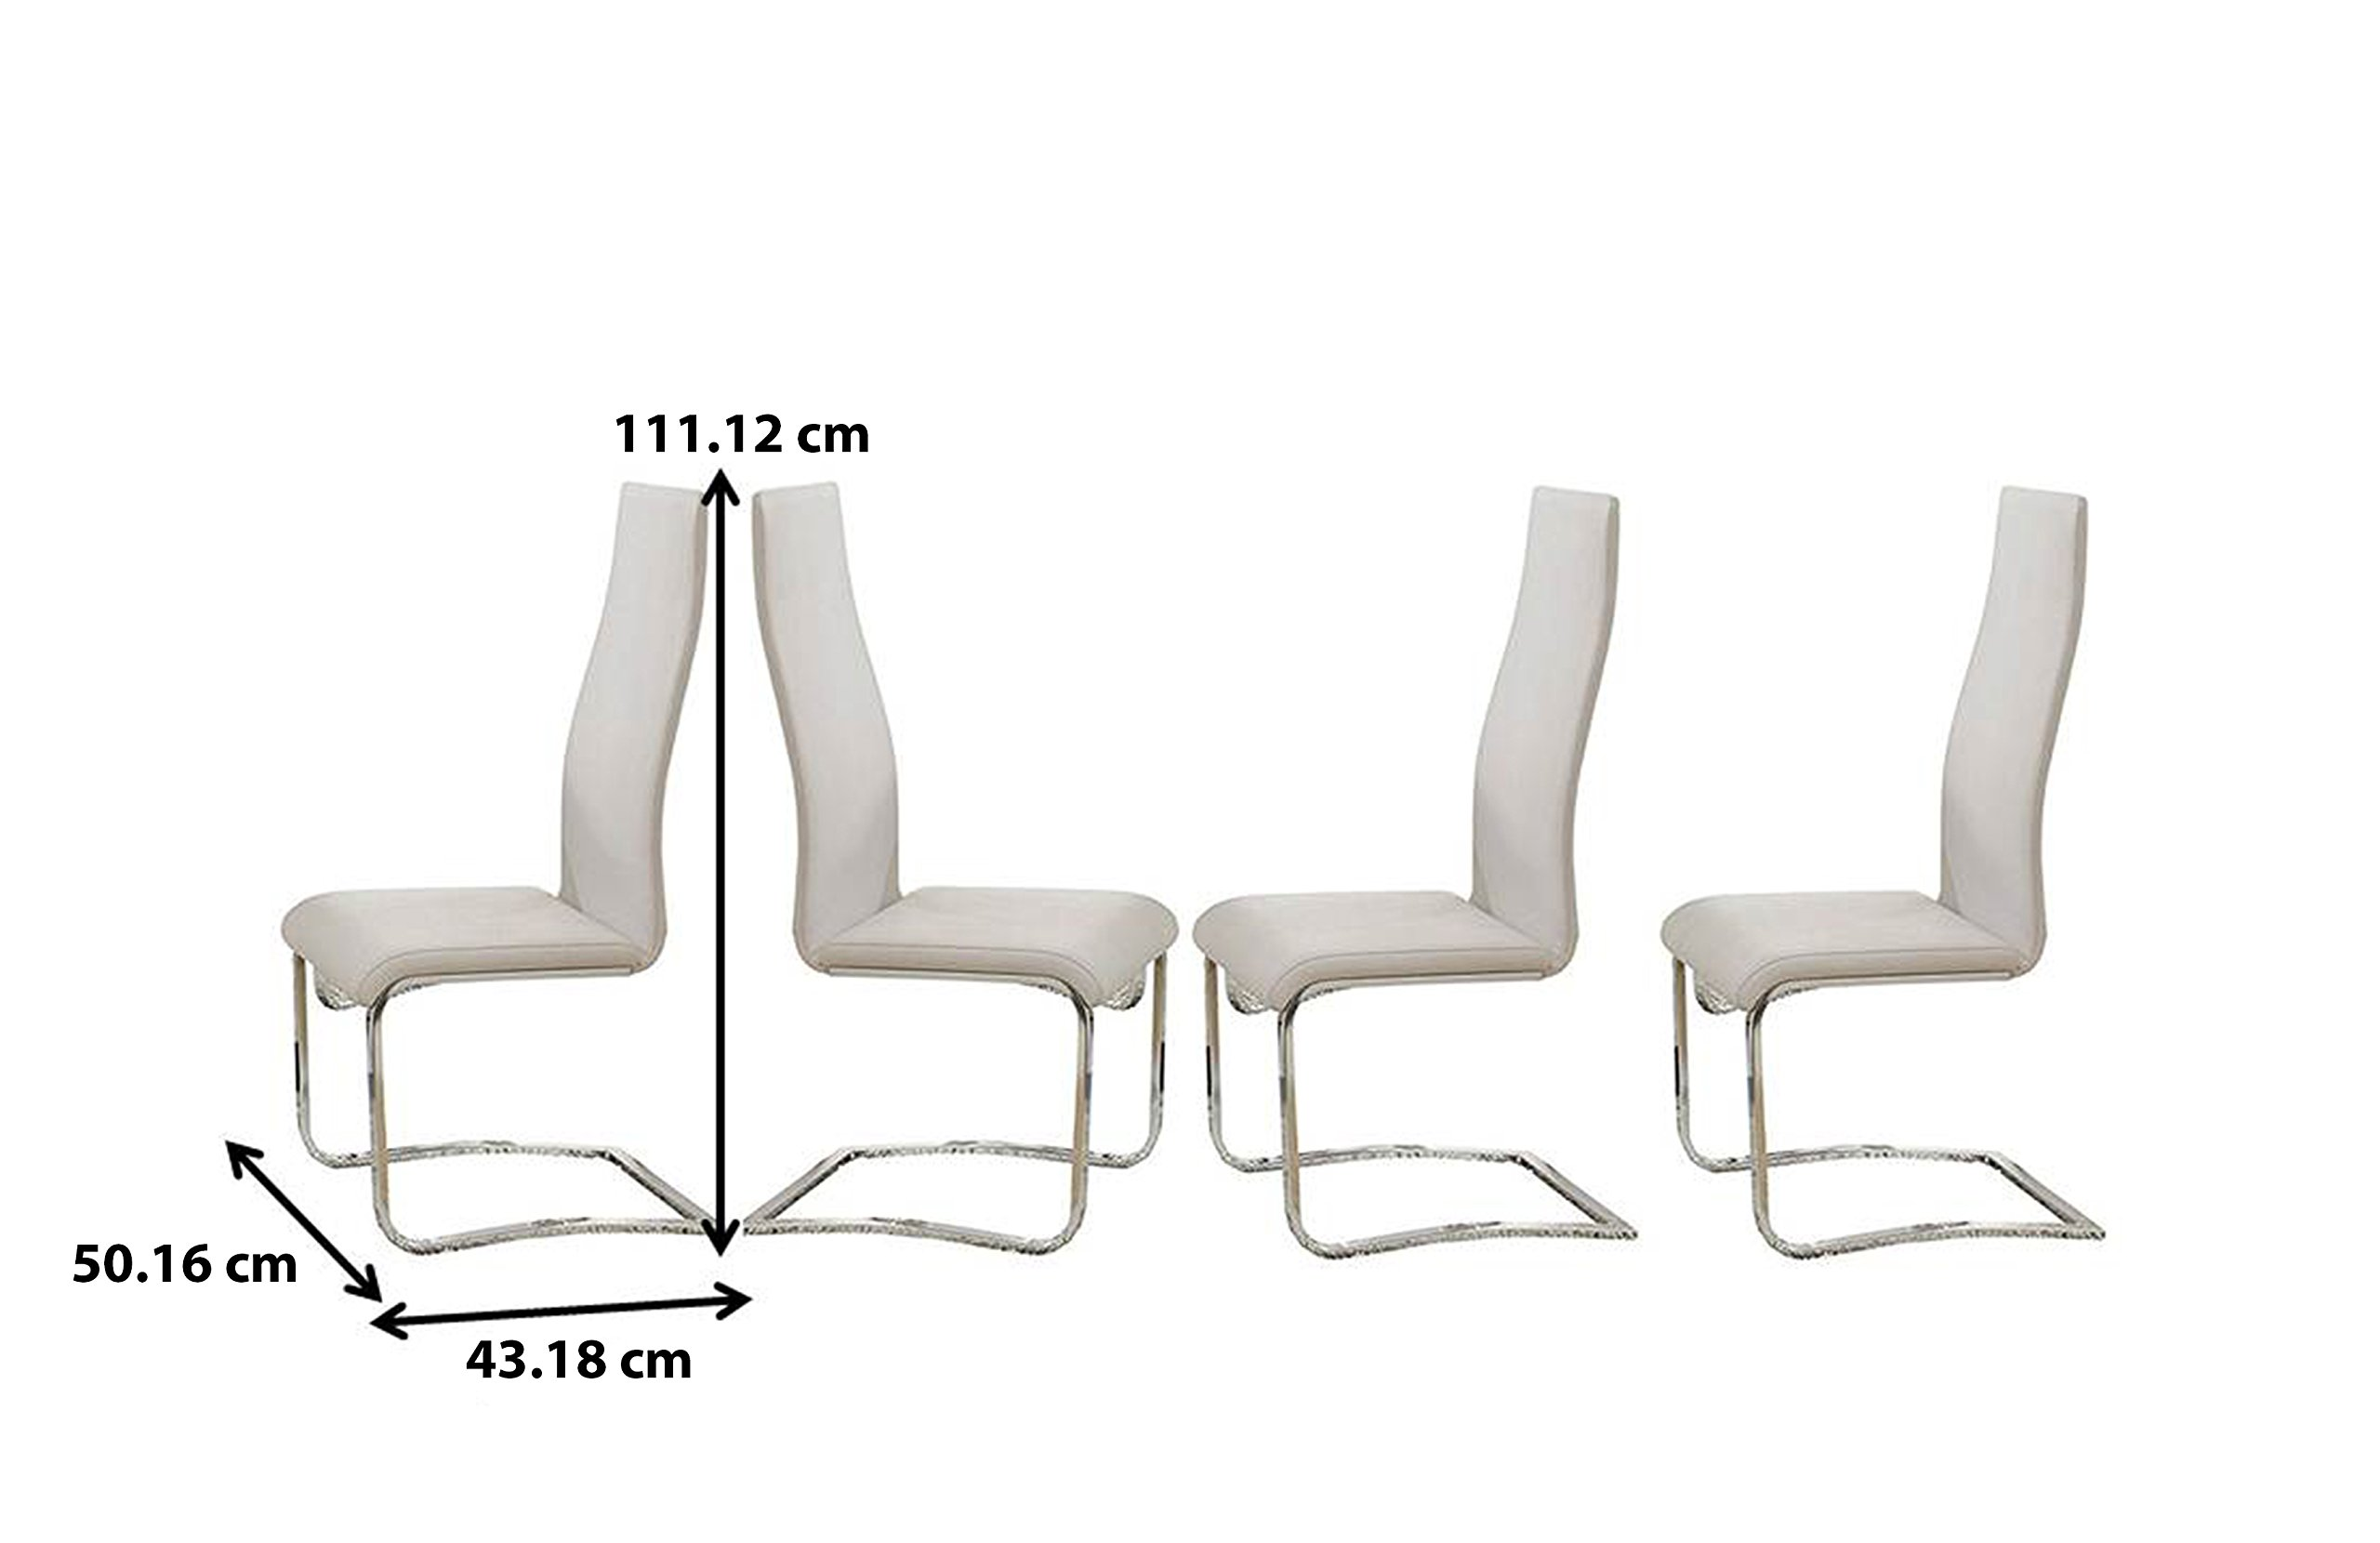 Faux Leather Dining Chairs Chrome and White (Set of 4) by Coaster Home Furnishings (Image #3)